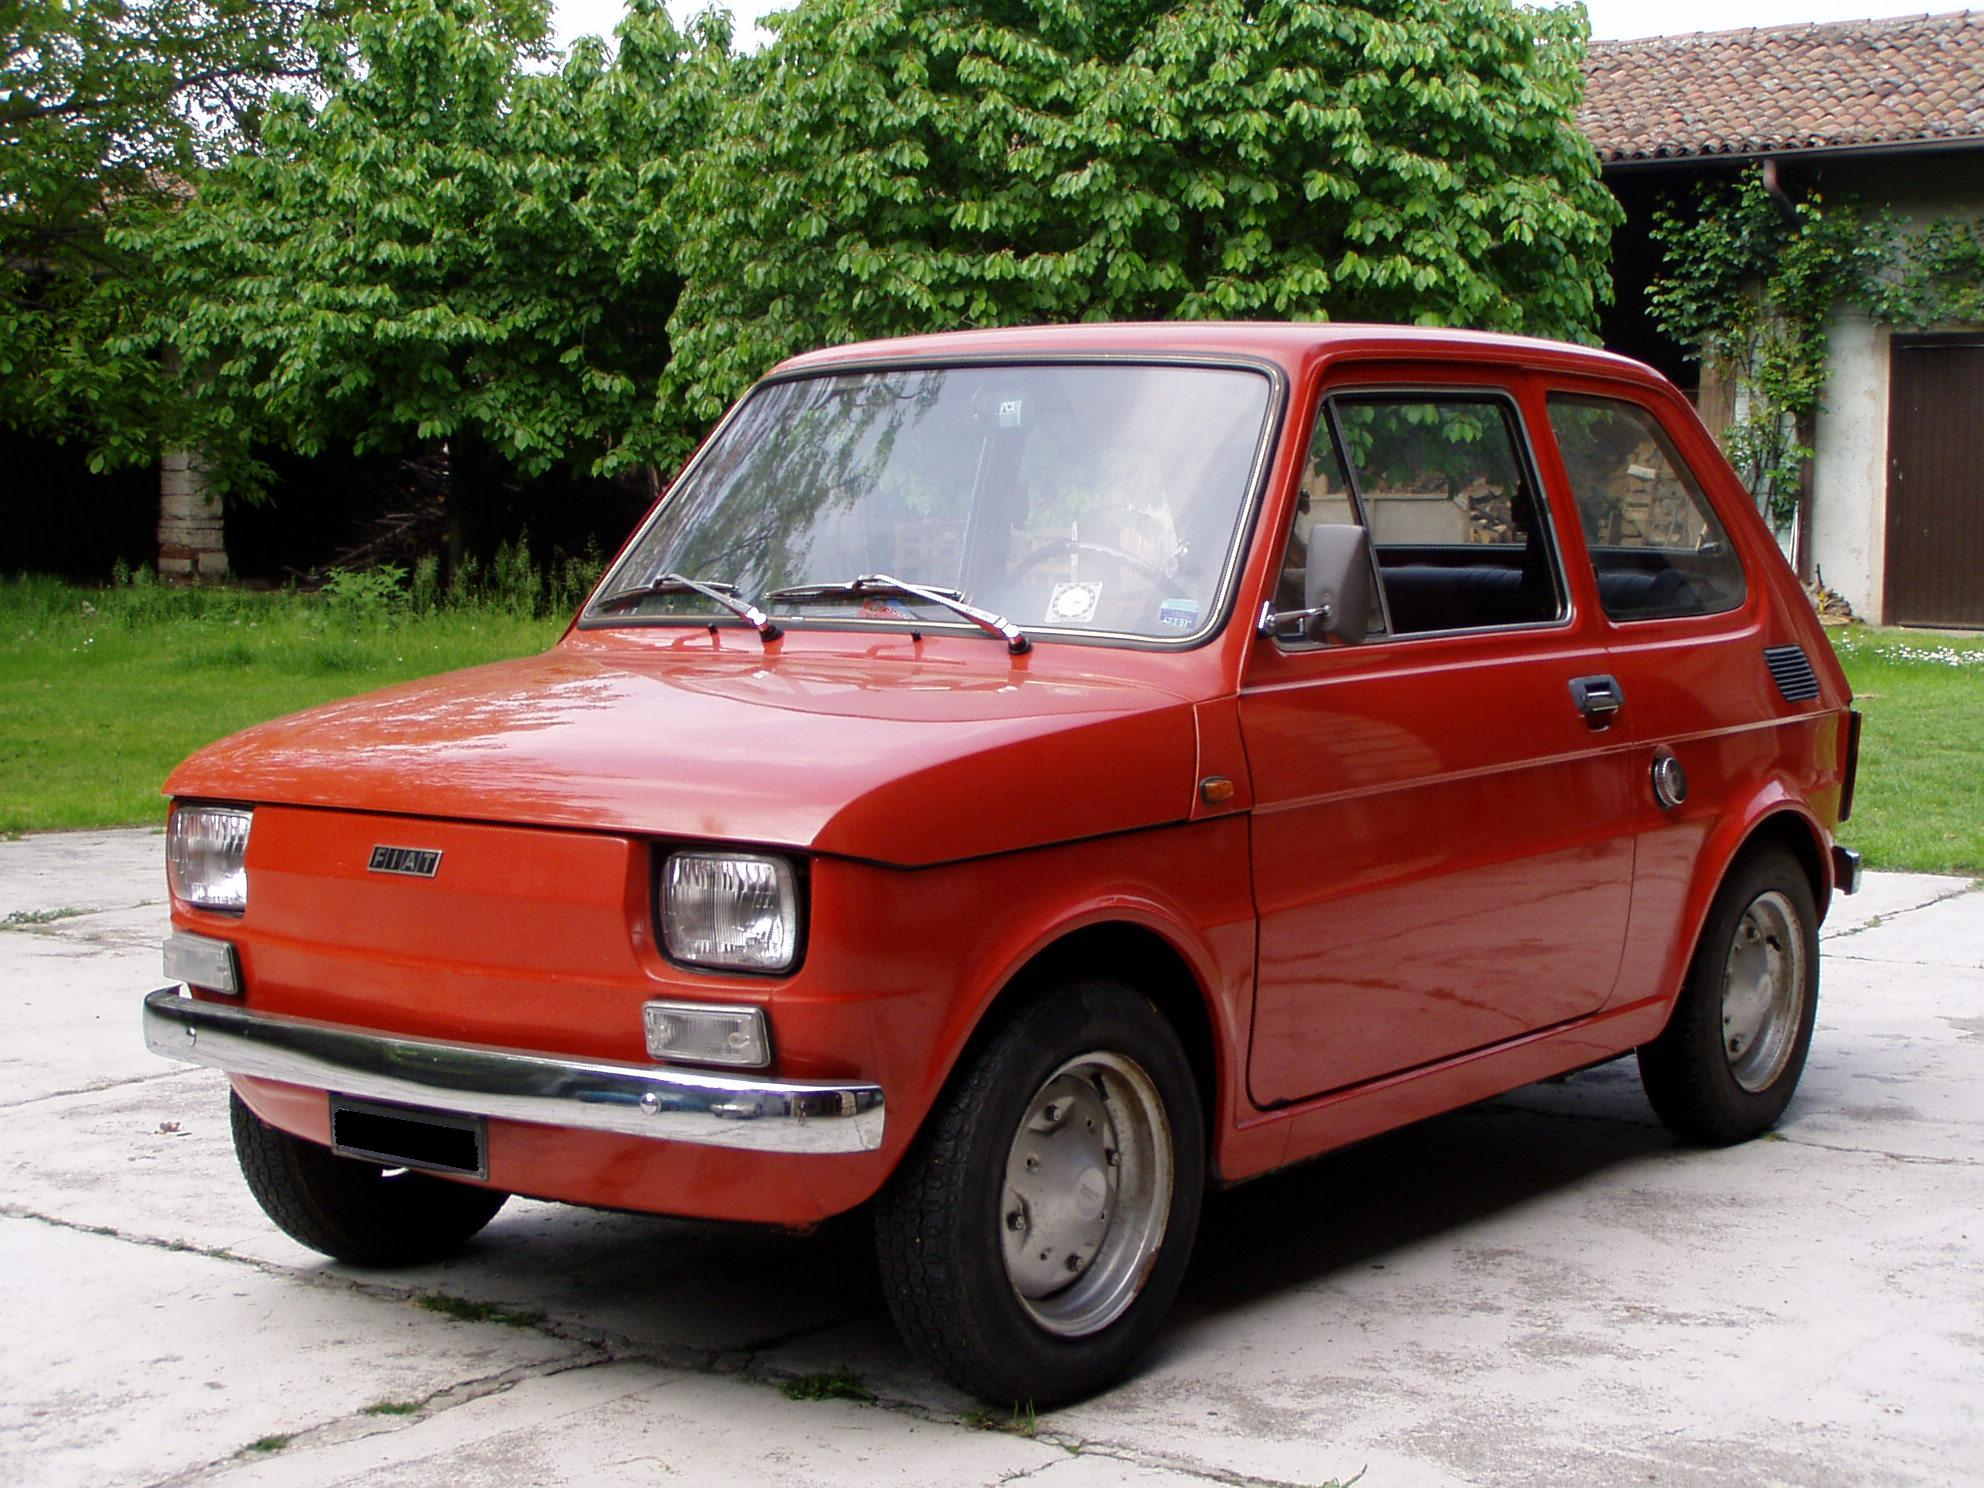 Would The Fiat P Fiat BIS Be A Bad First Car Because It - Cool first cars